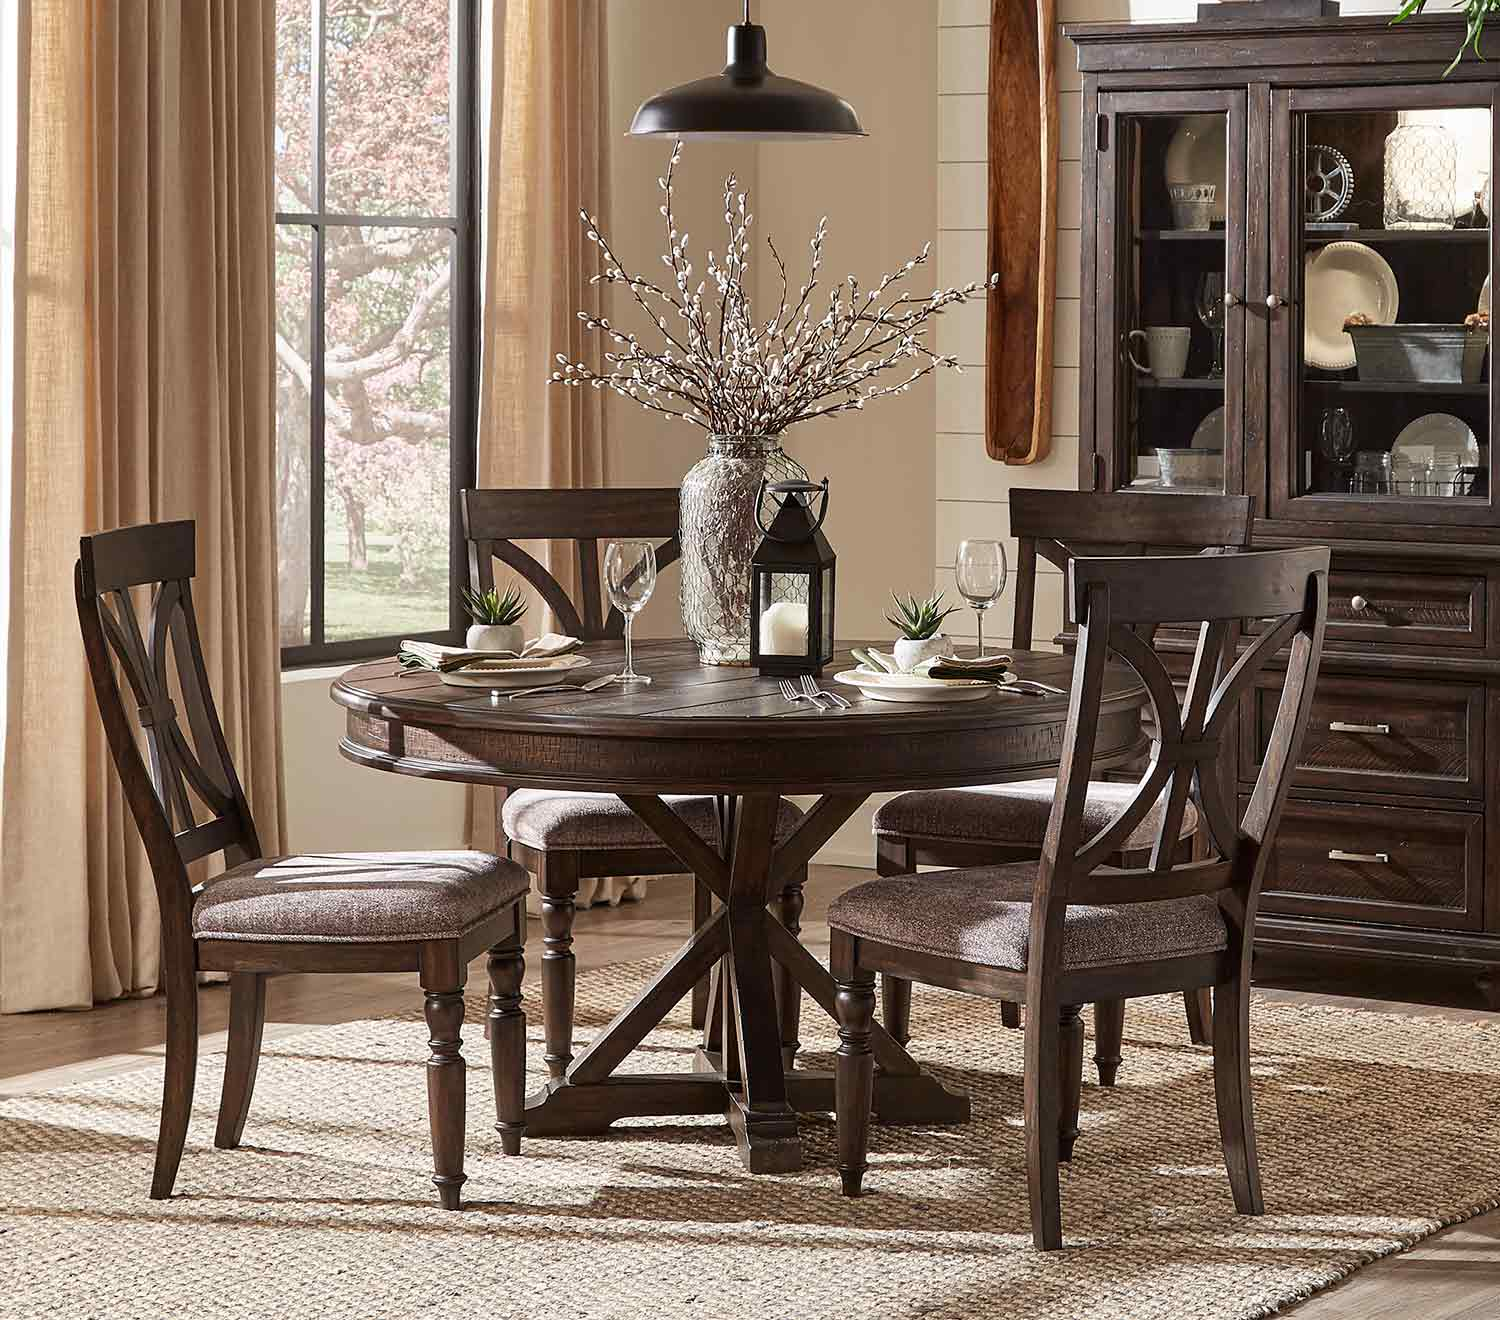 Homelegance Cardano Round Dining Set - Driftwood Charcoal